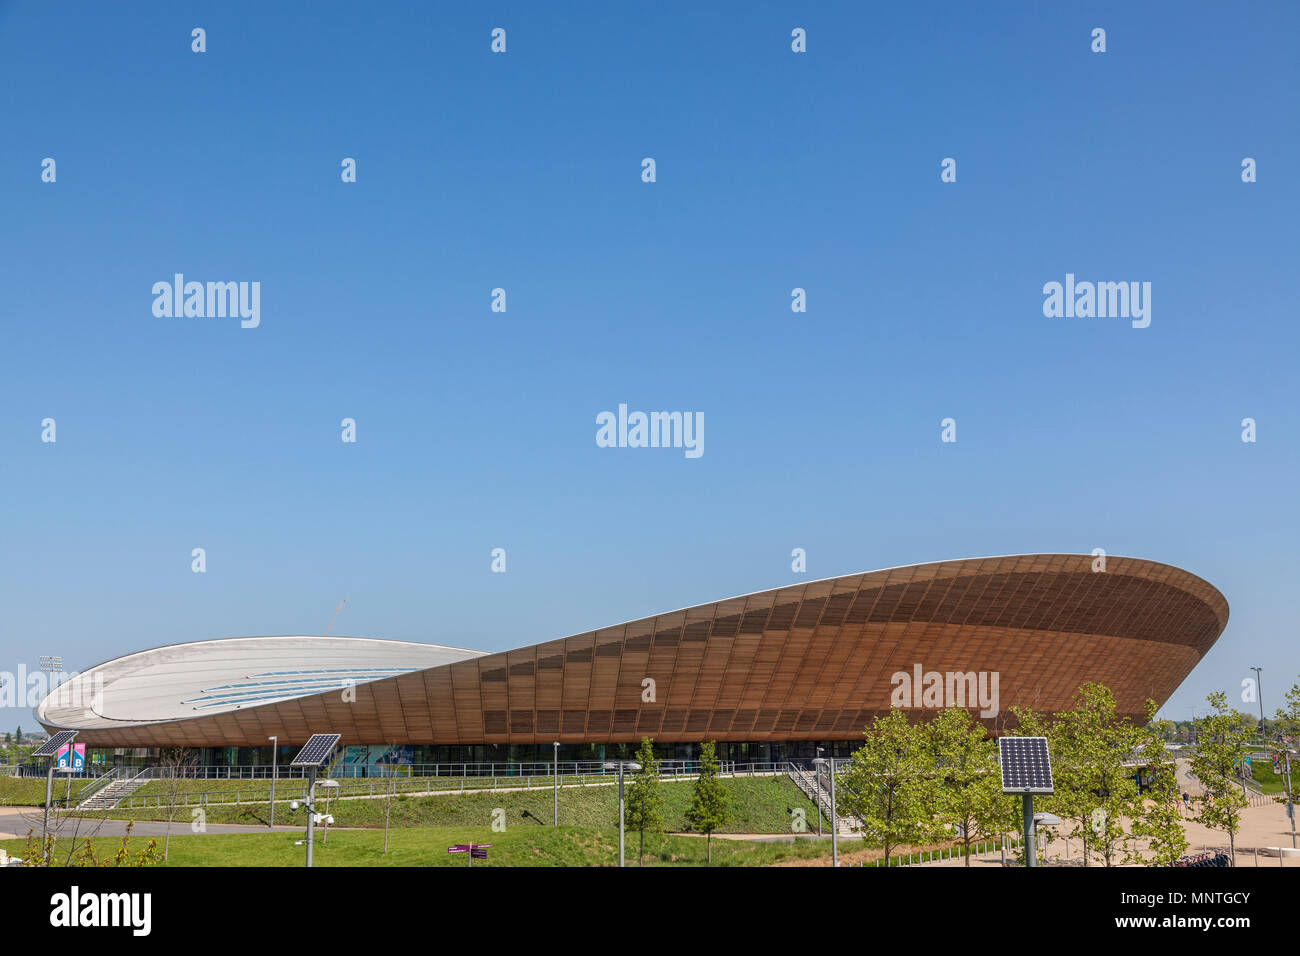 Lee Vally Velopark at the Queen Elizabeth Olympic park in London. Affectionately known as the Pringle - Stock Image